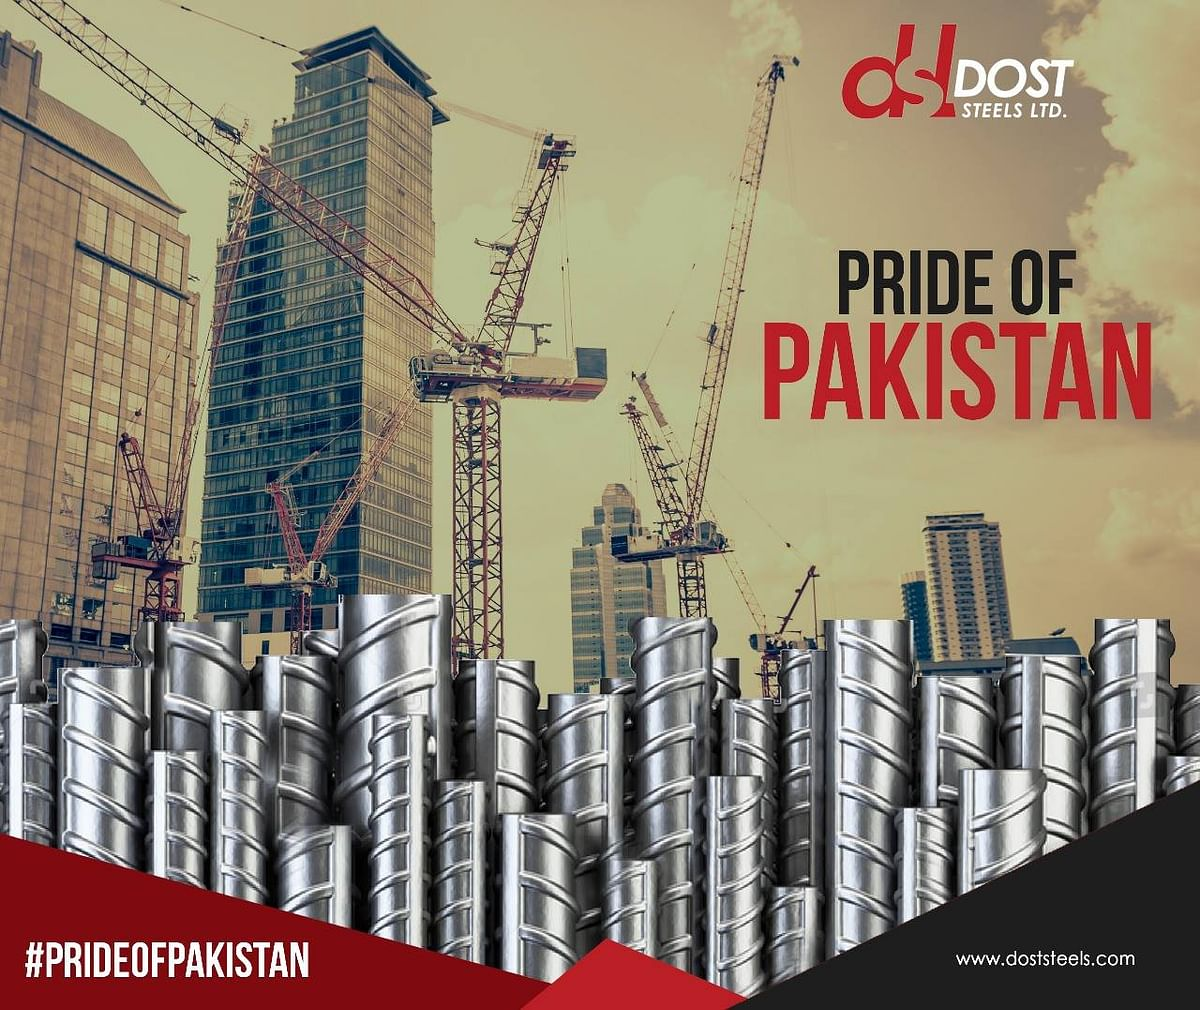 Crescent Star Insurance Claims 60% Stake in Dost Steel in Pakistan